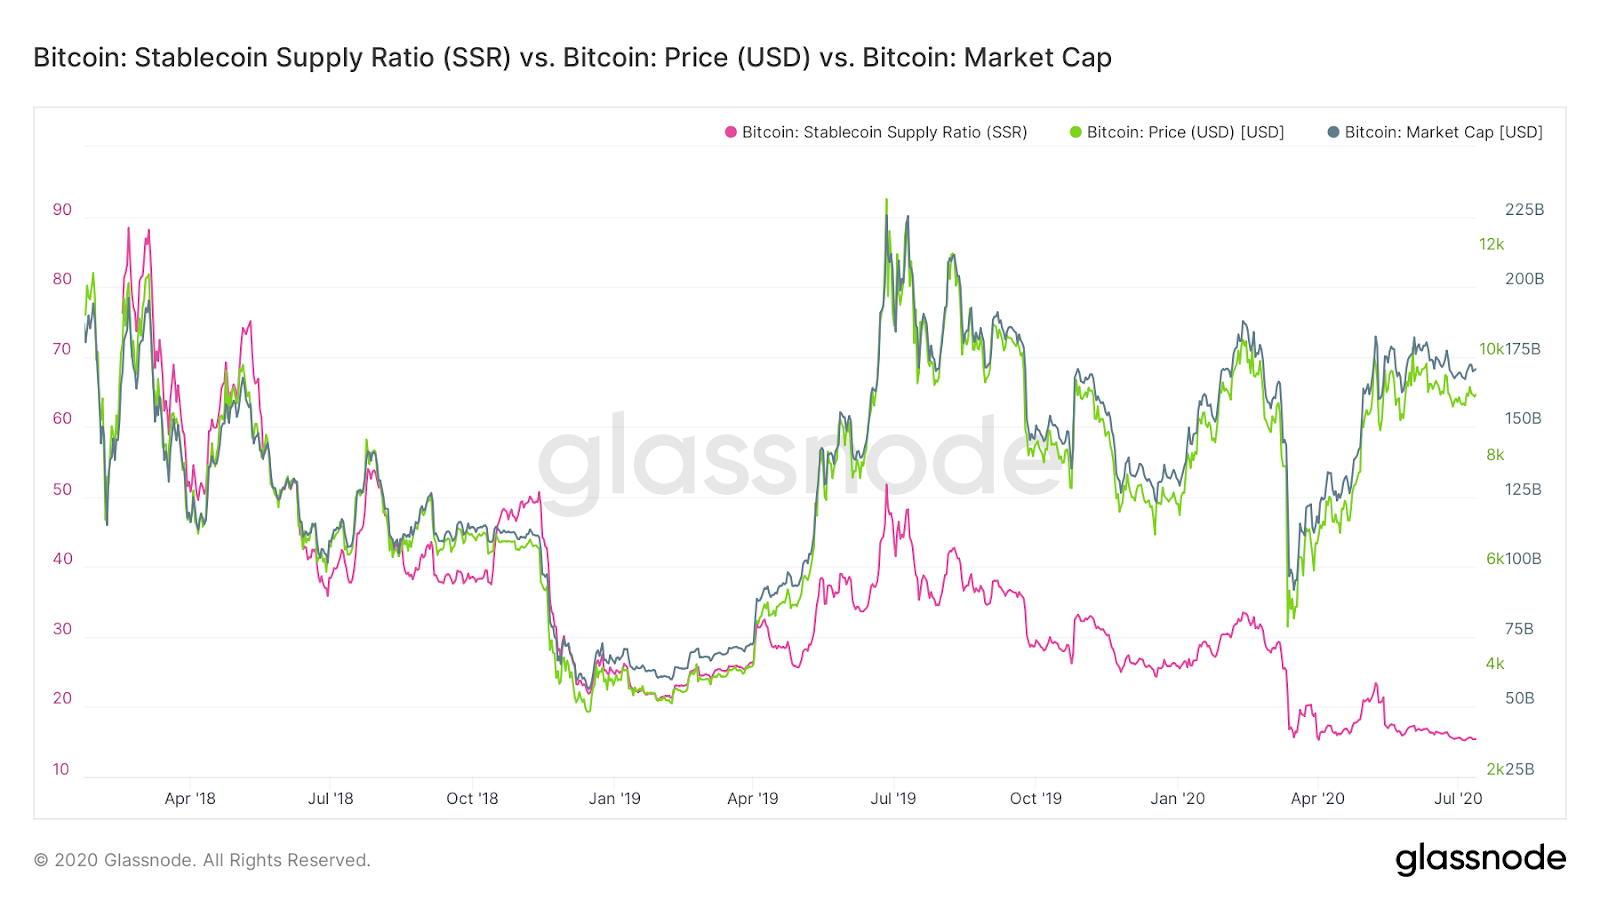 SSR, Bitcoin price and market capitalization